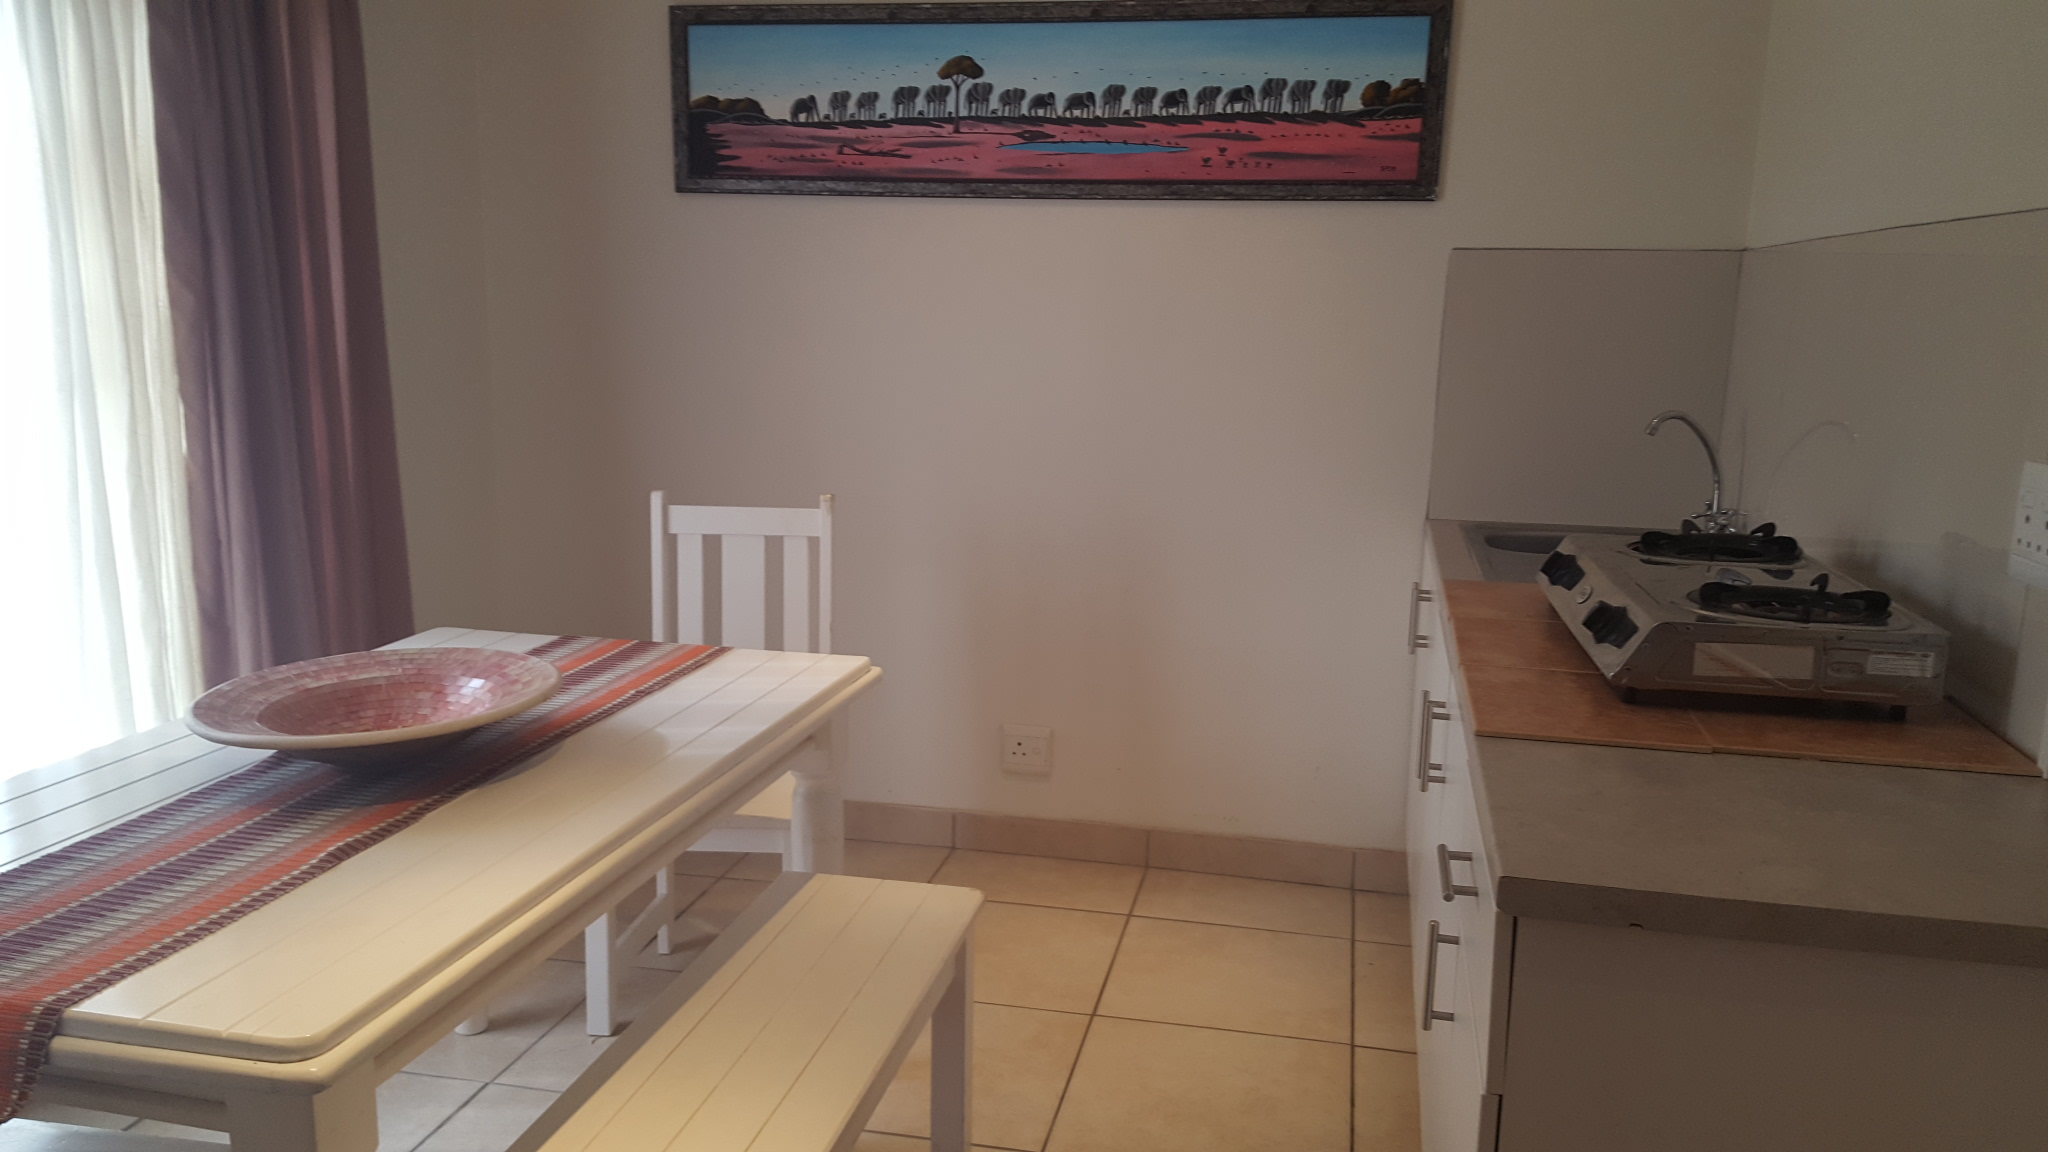 5 Bedroom House for sale in Bluewater Bay ENT0067493 : photo#10